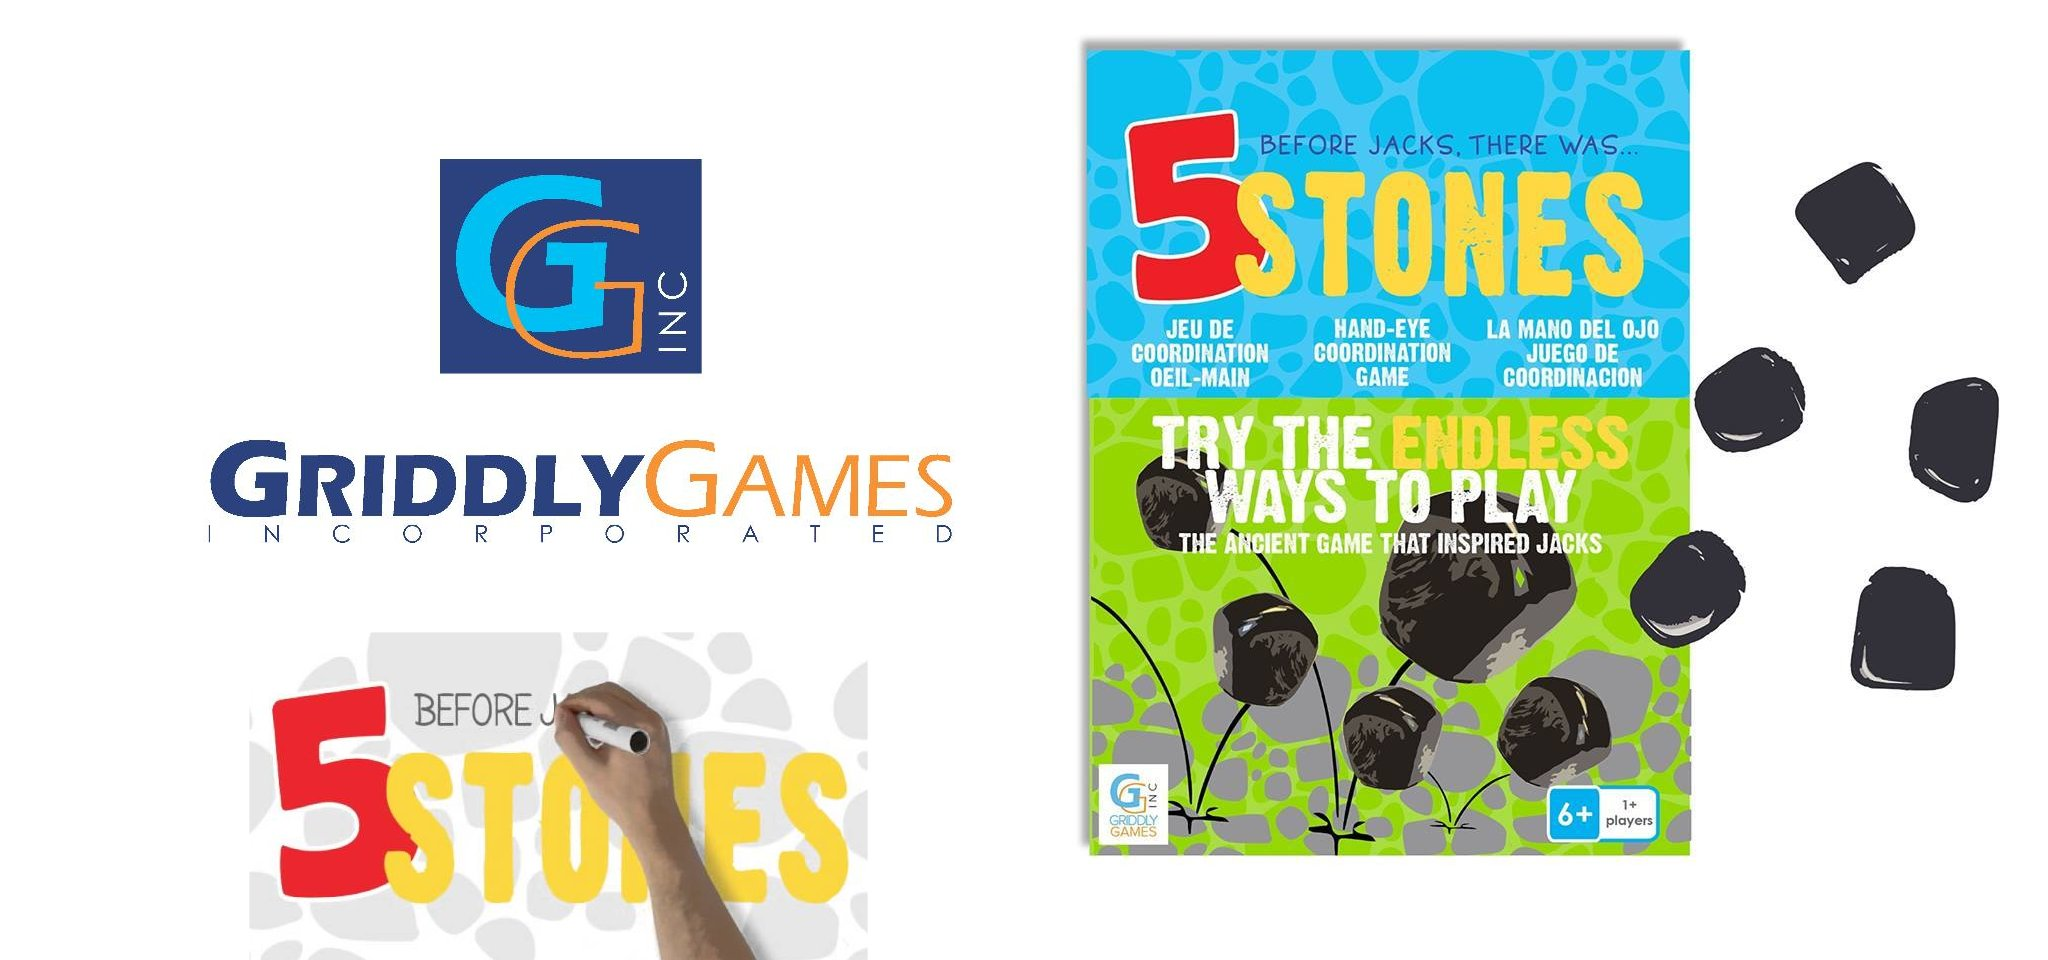 5 stones game from Griddly Games